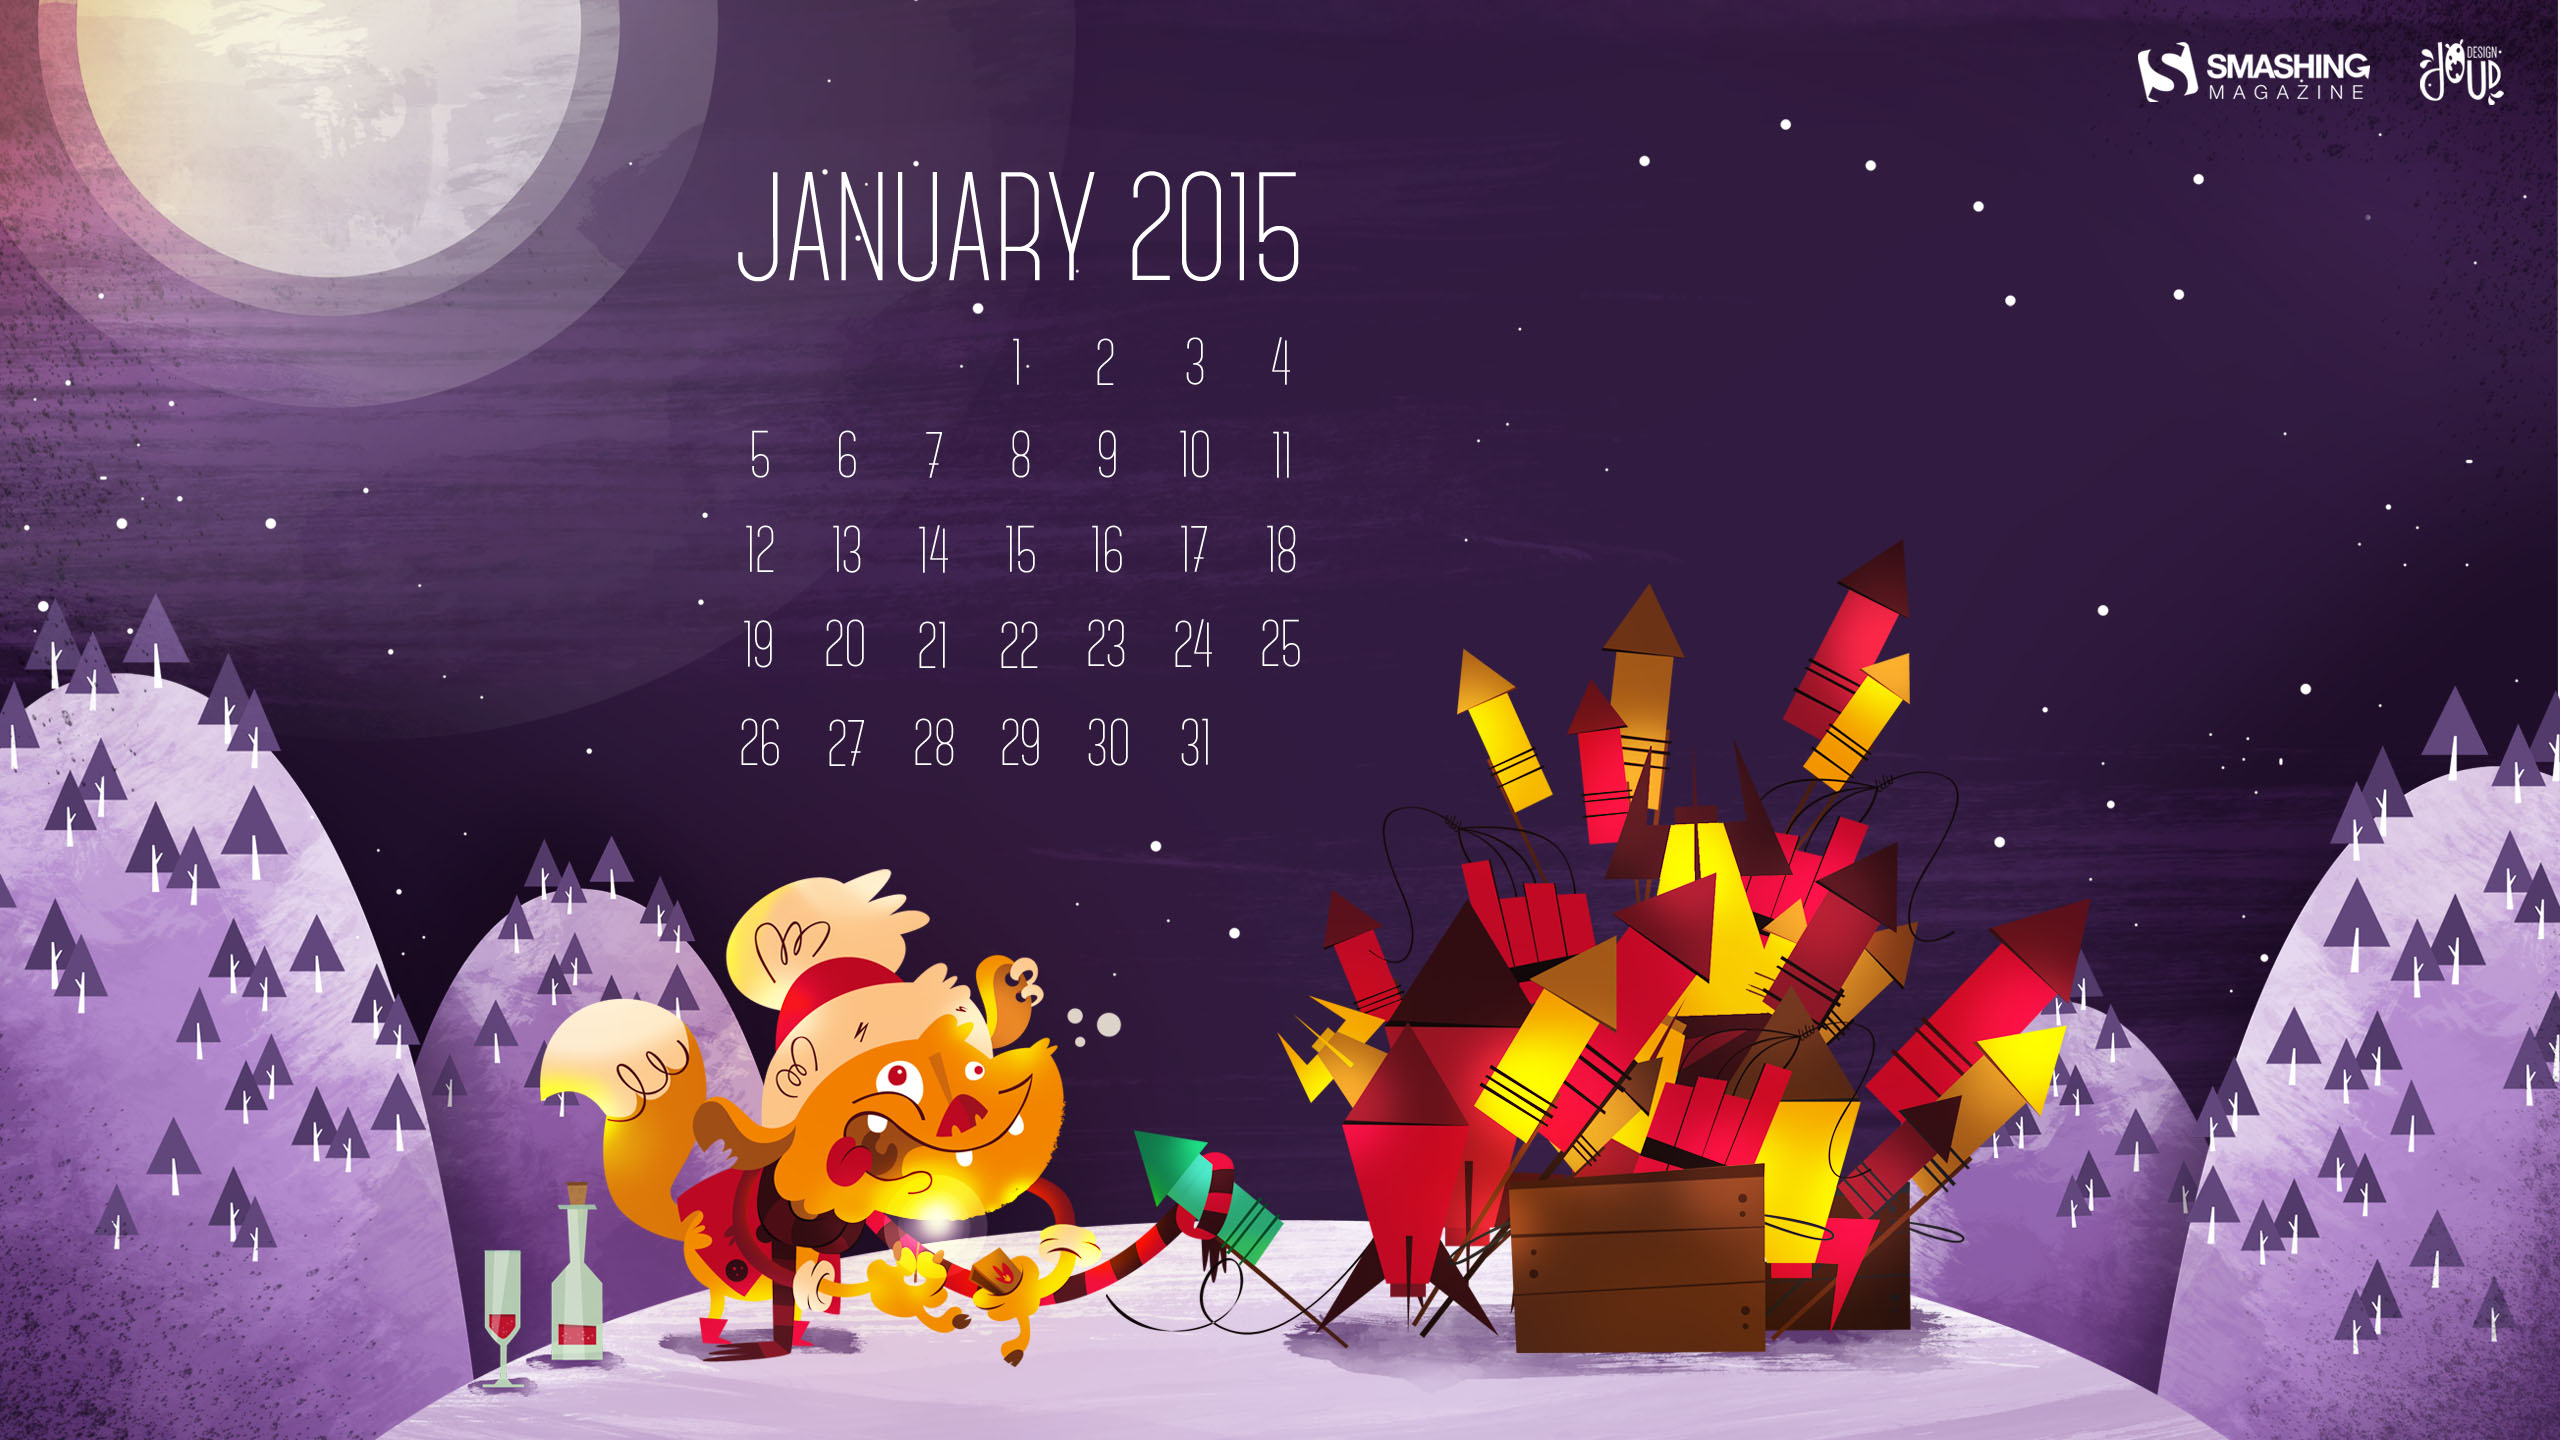 Desktop Wallpaper Calendars January 2015 Smashing Magazine 2560x1440